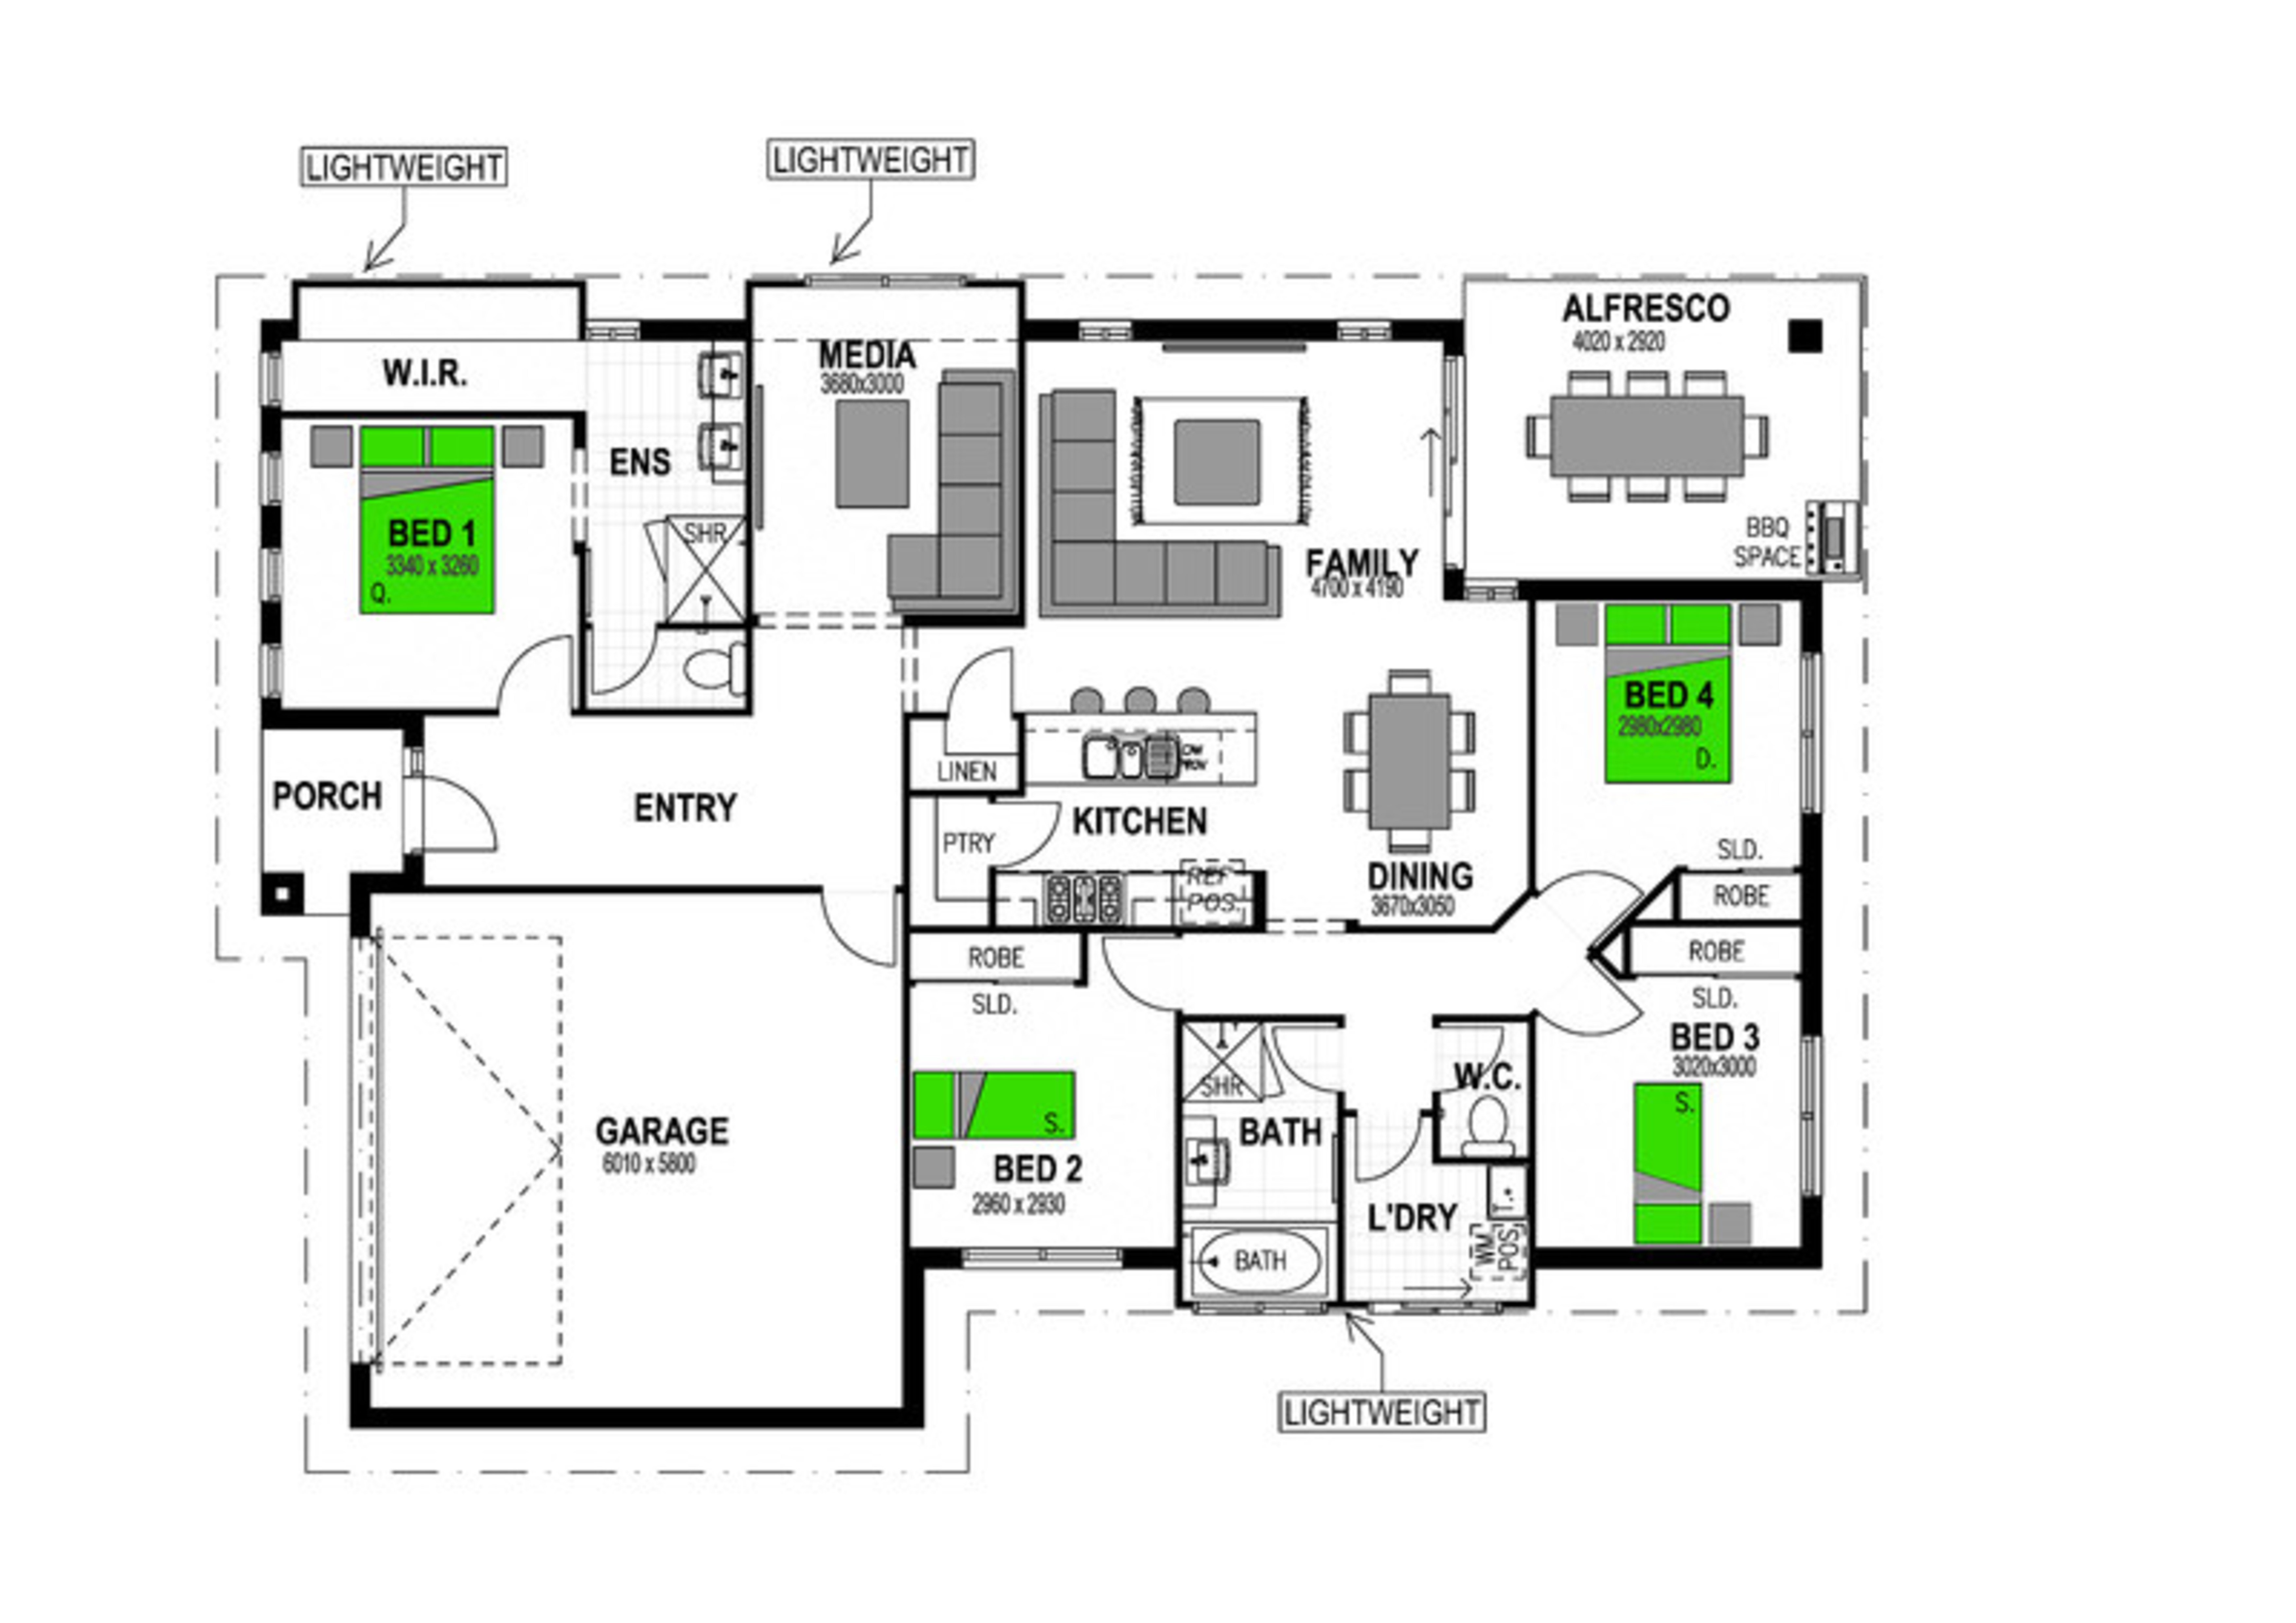 2219 WHISK WAY MOUNT DUNEED Floorplan